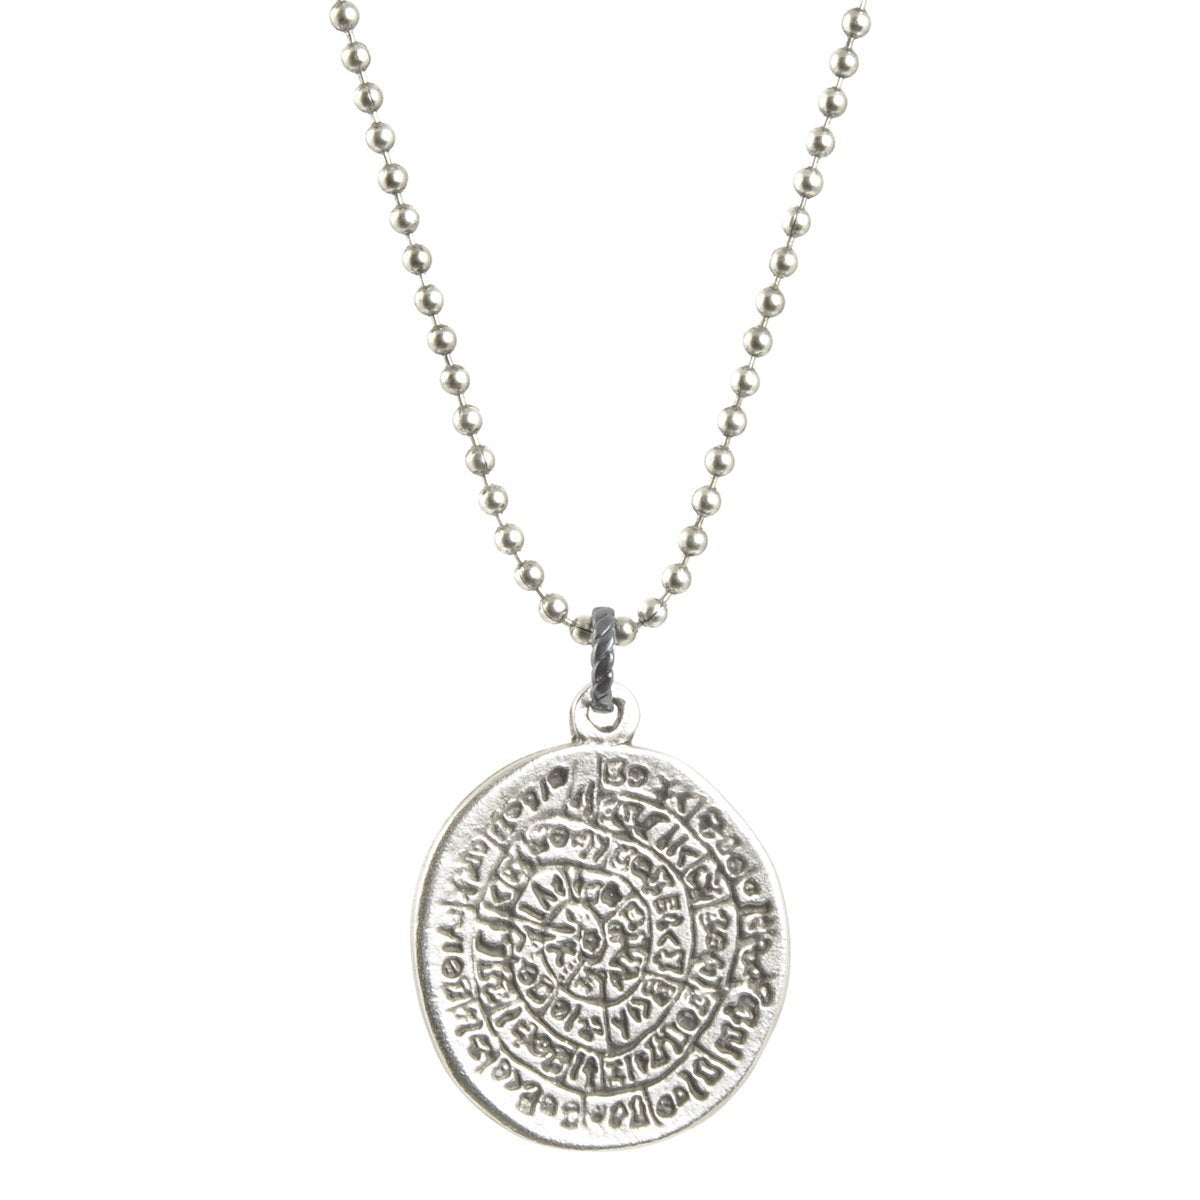 Finished Jewelry-Simple-Phaistos Disc Antique Silver Pendant Ball Chain Necklace